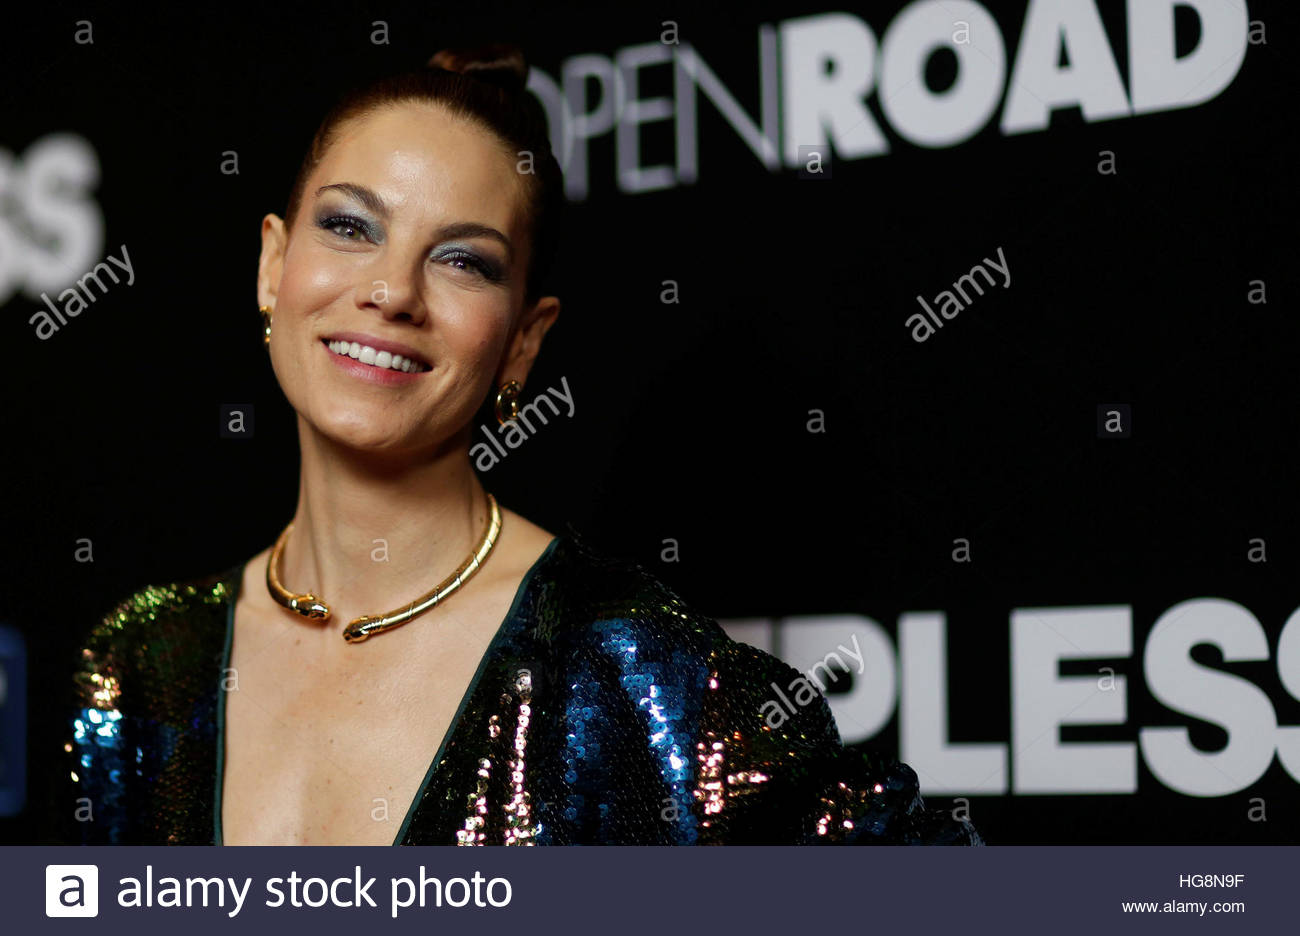 "Cast member Michelle Monaghan poses at the premiere of the movie ""Sleepless"" in Los Angeles, California U.S., January Stock Photo"